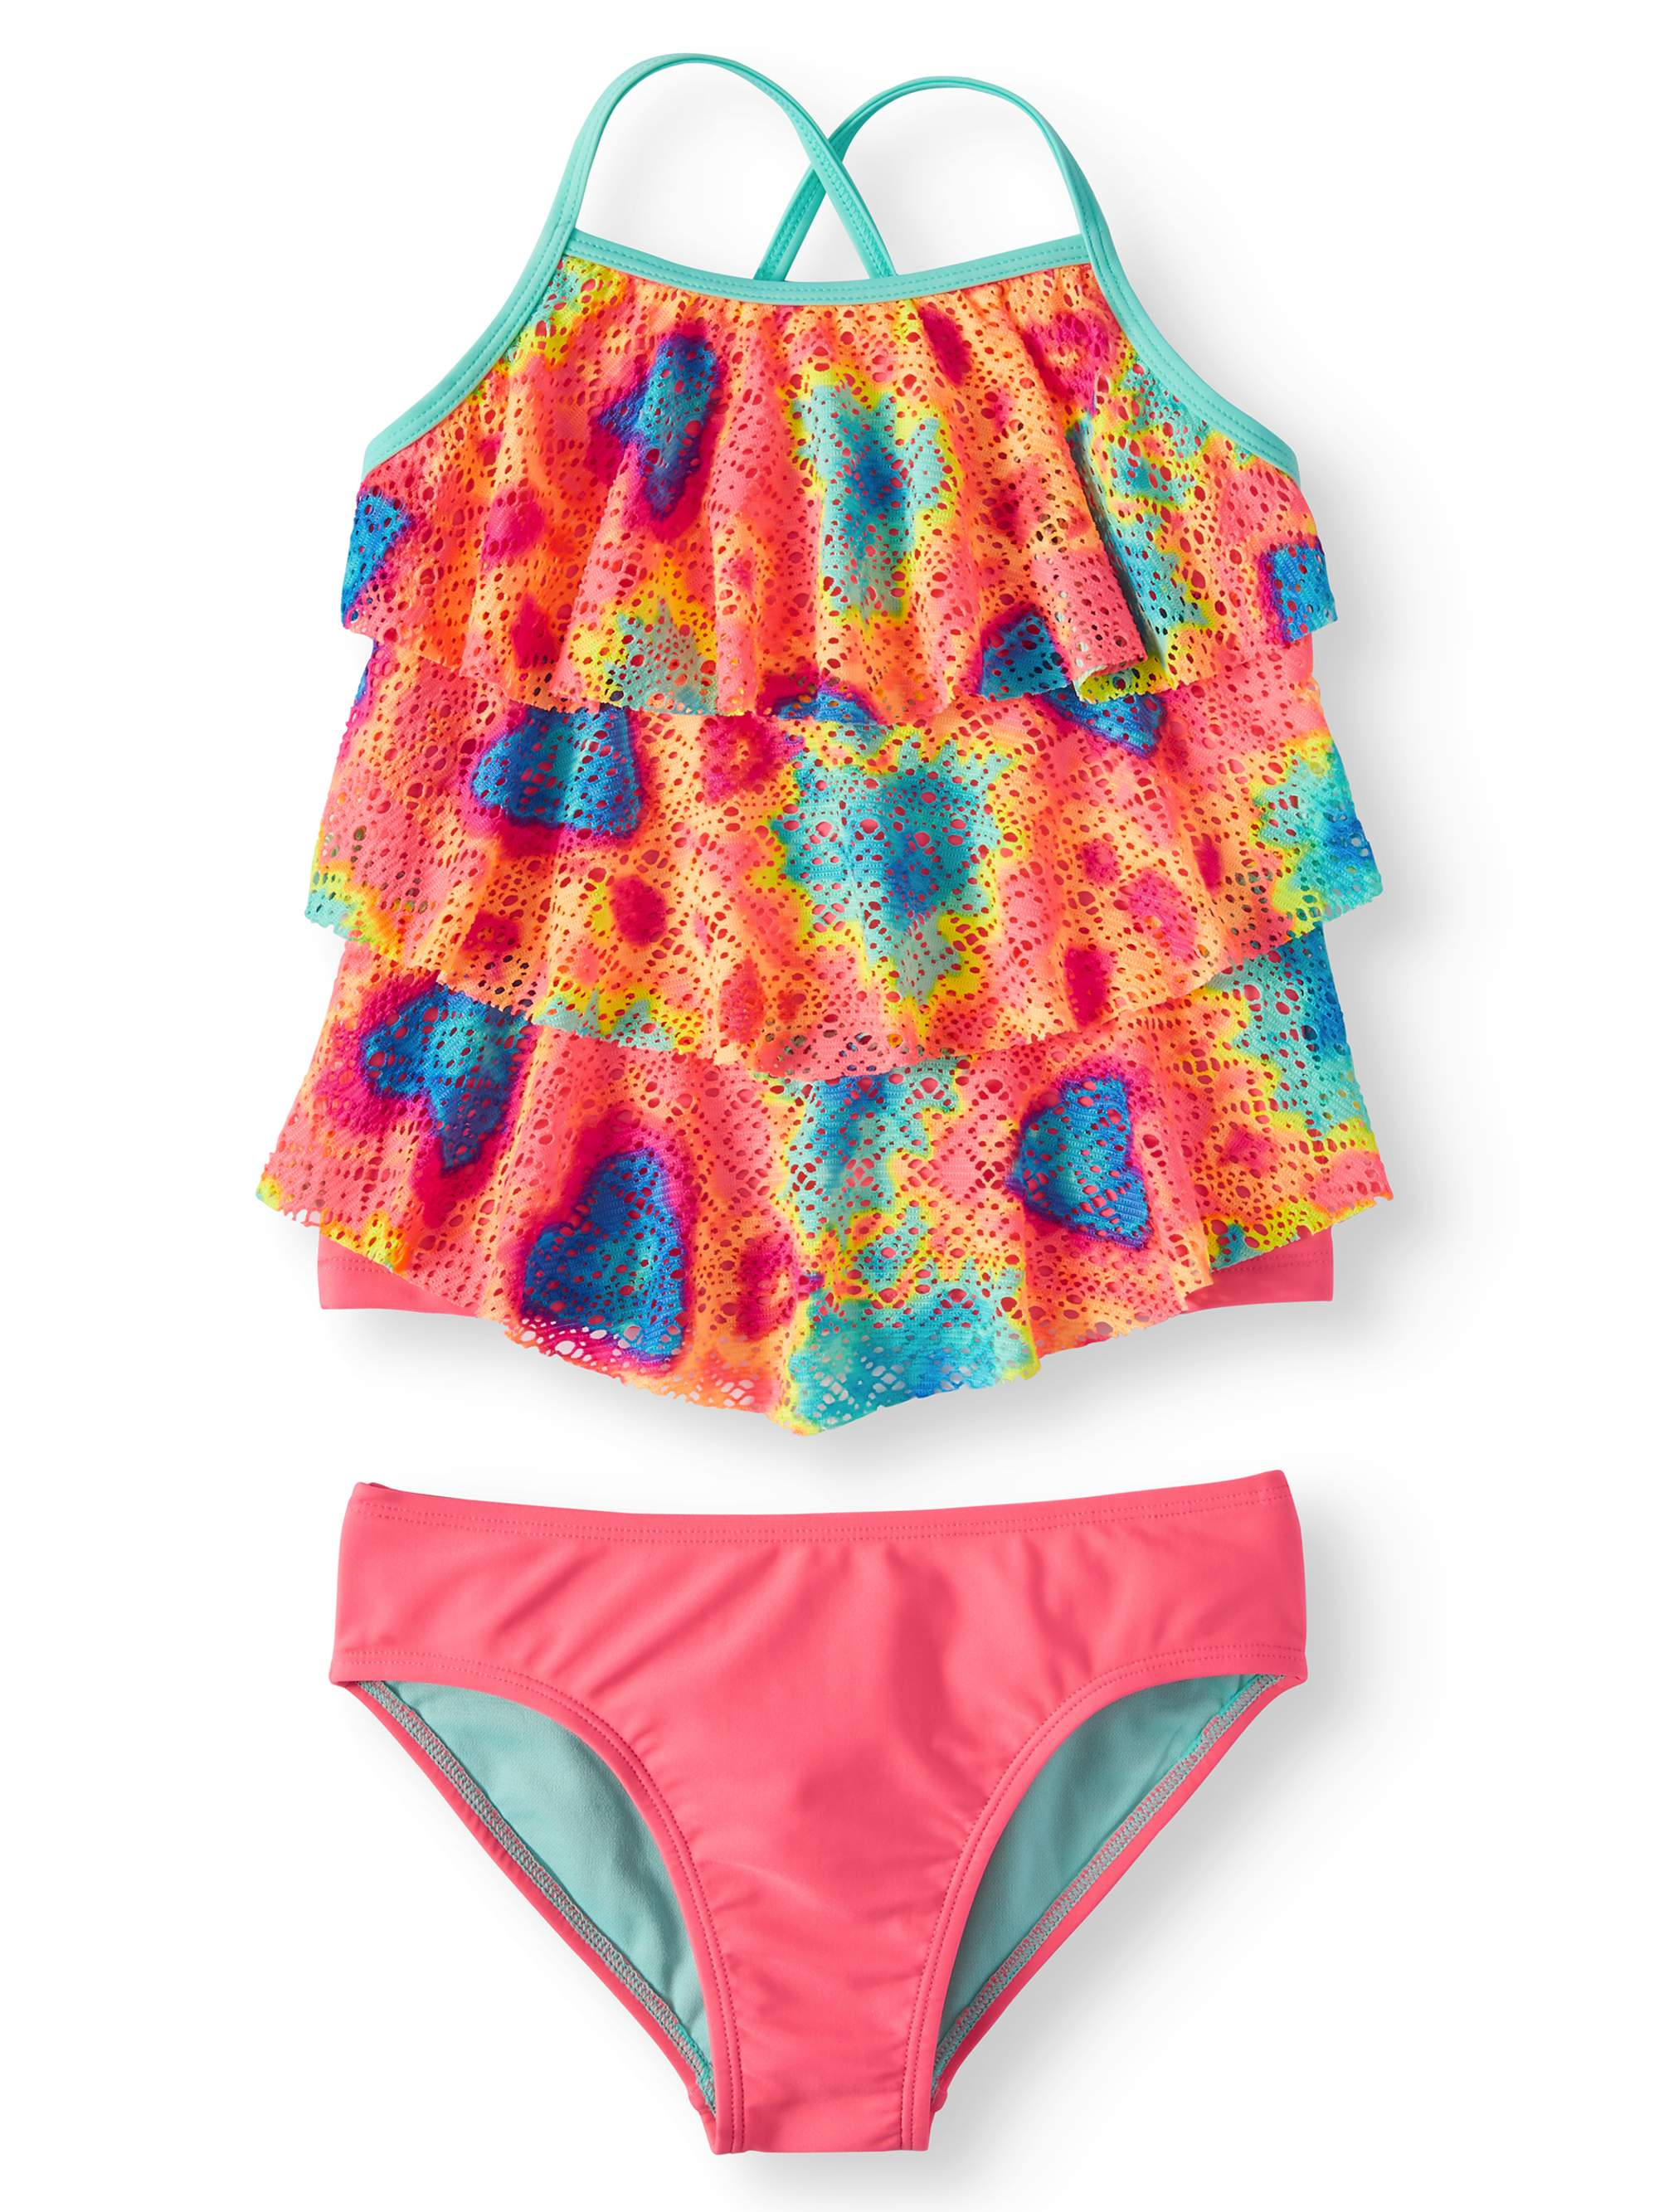 dd4b7a8b7fae Wonder Nation - Tie Dye Printed Crochet Tankini Swimsuit (Little Girls, Big  Girls & Big Girls Plus) - Walmart.com